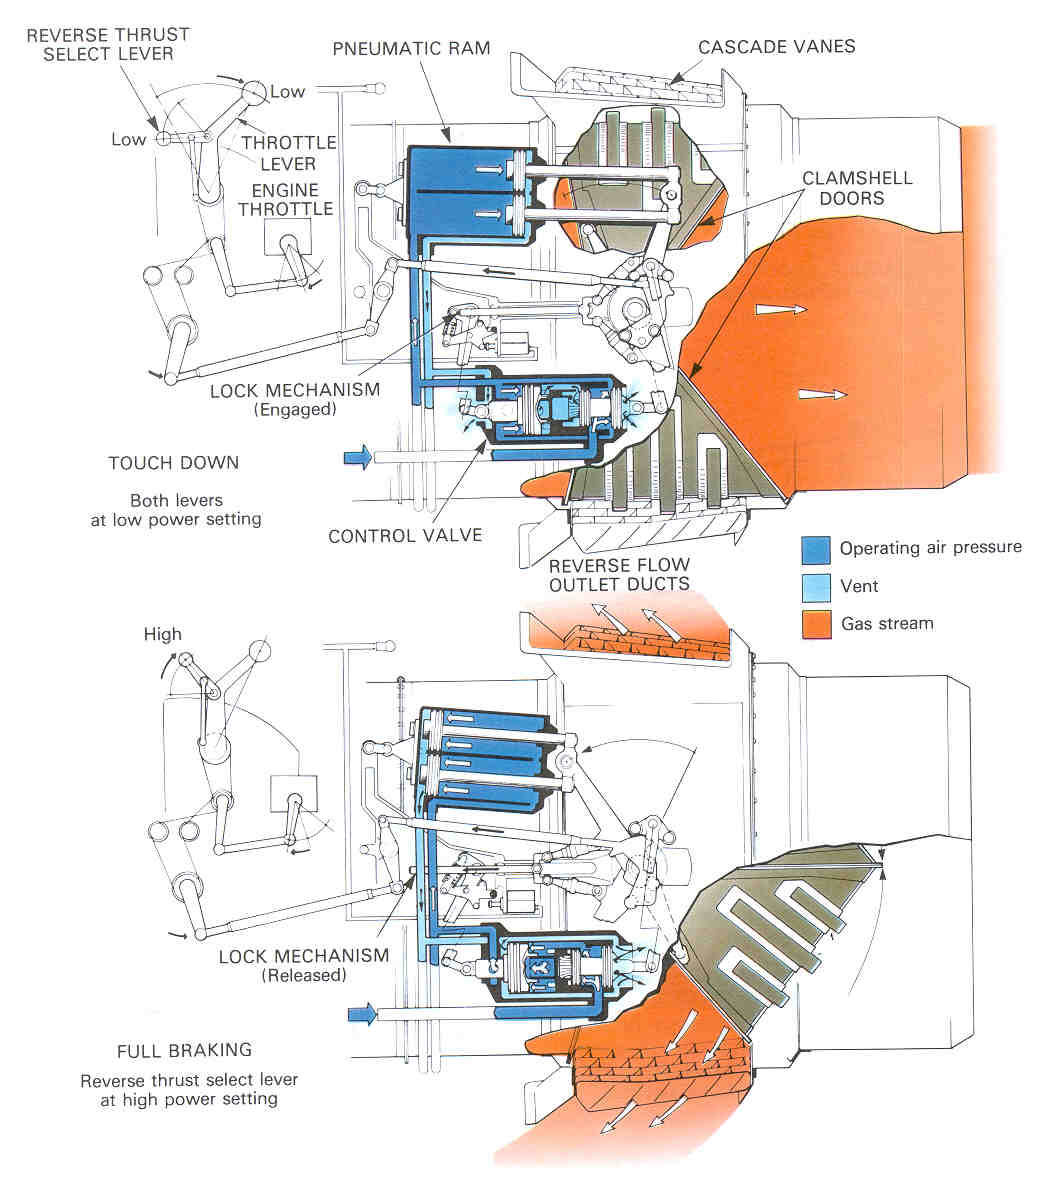 Thrust Reversing School Of Aeronautics And Astronautics Purdue Jet Engine Schematic Shown Right Photo